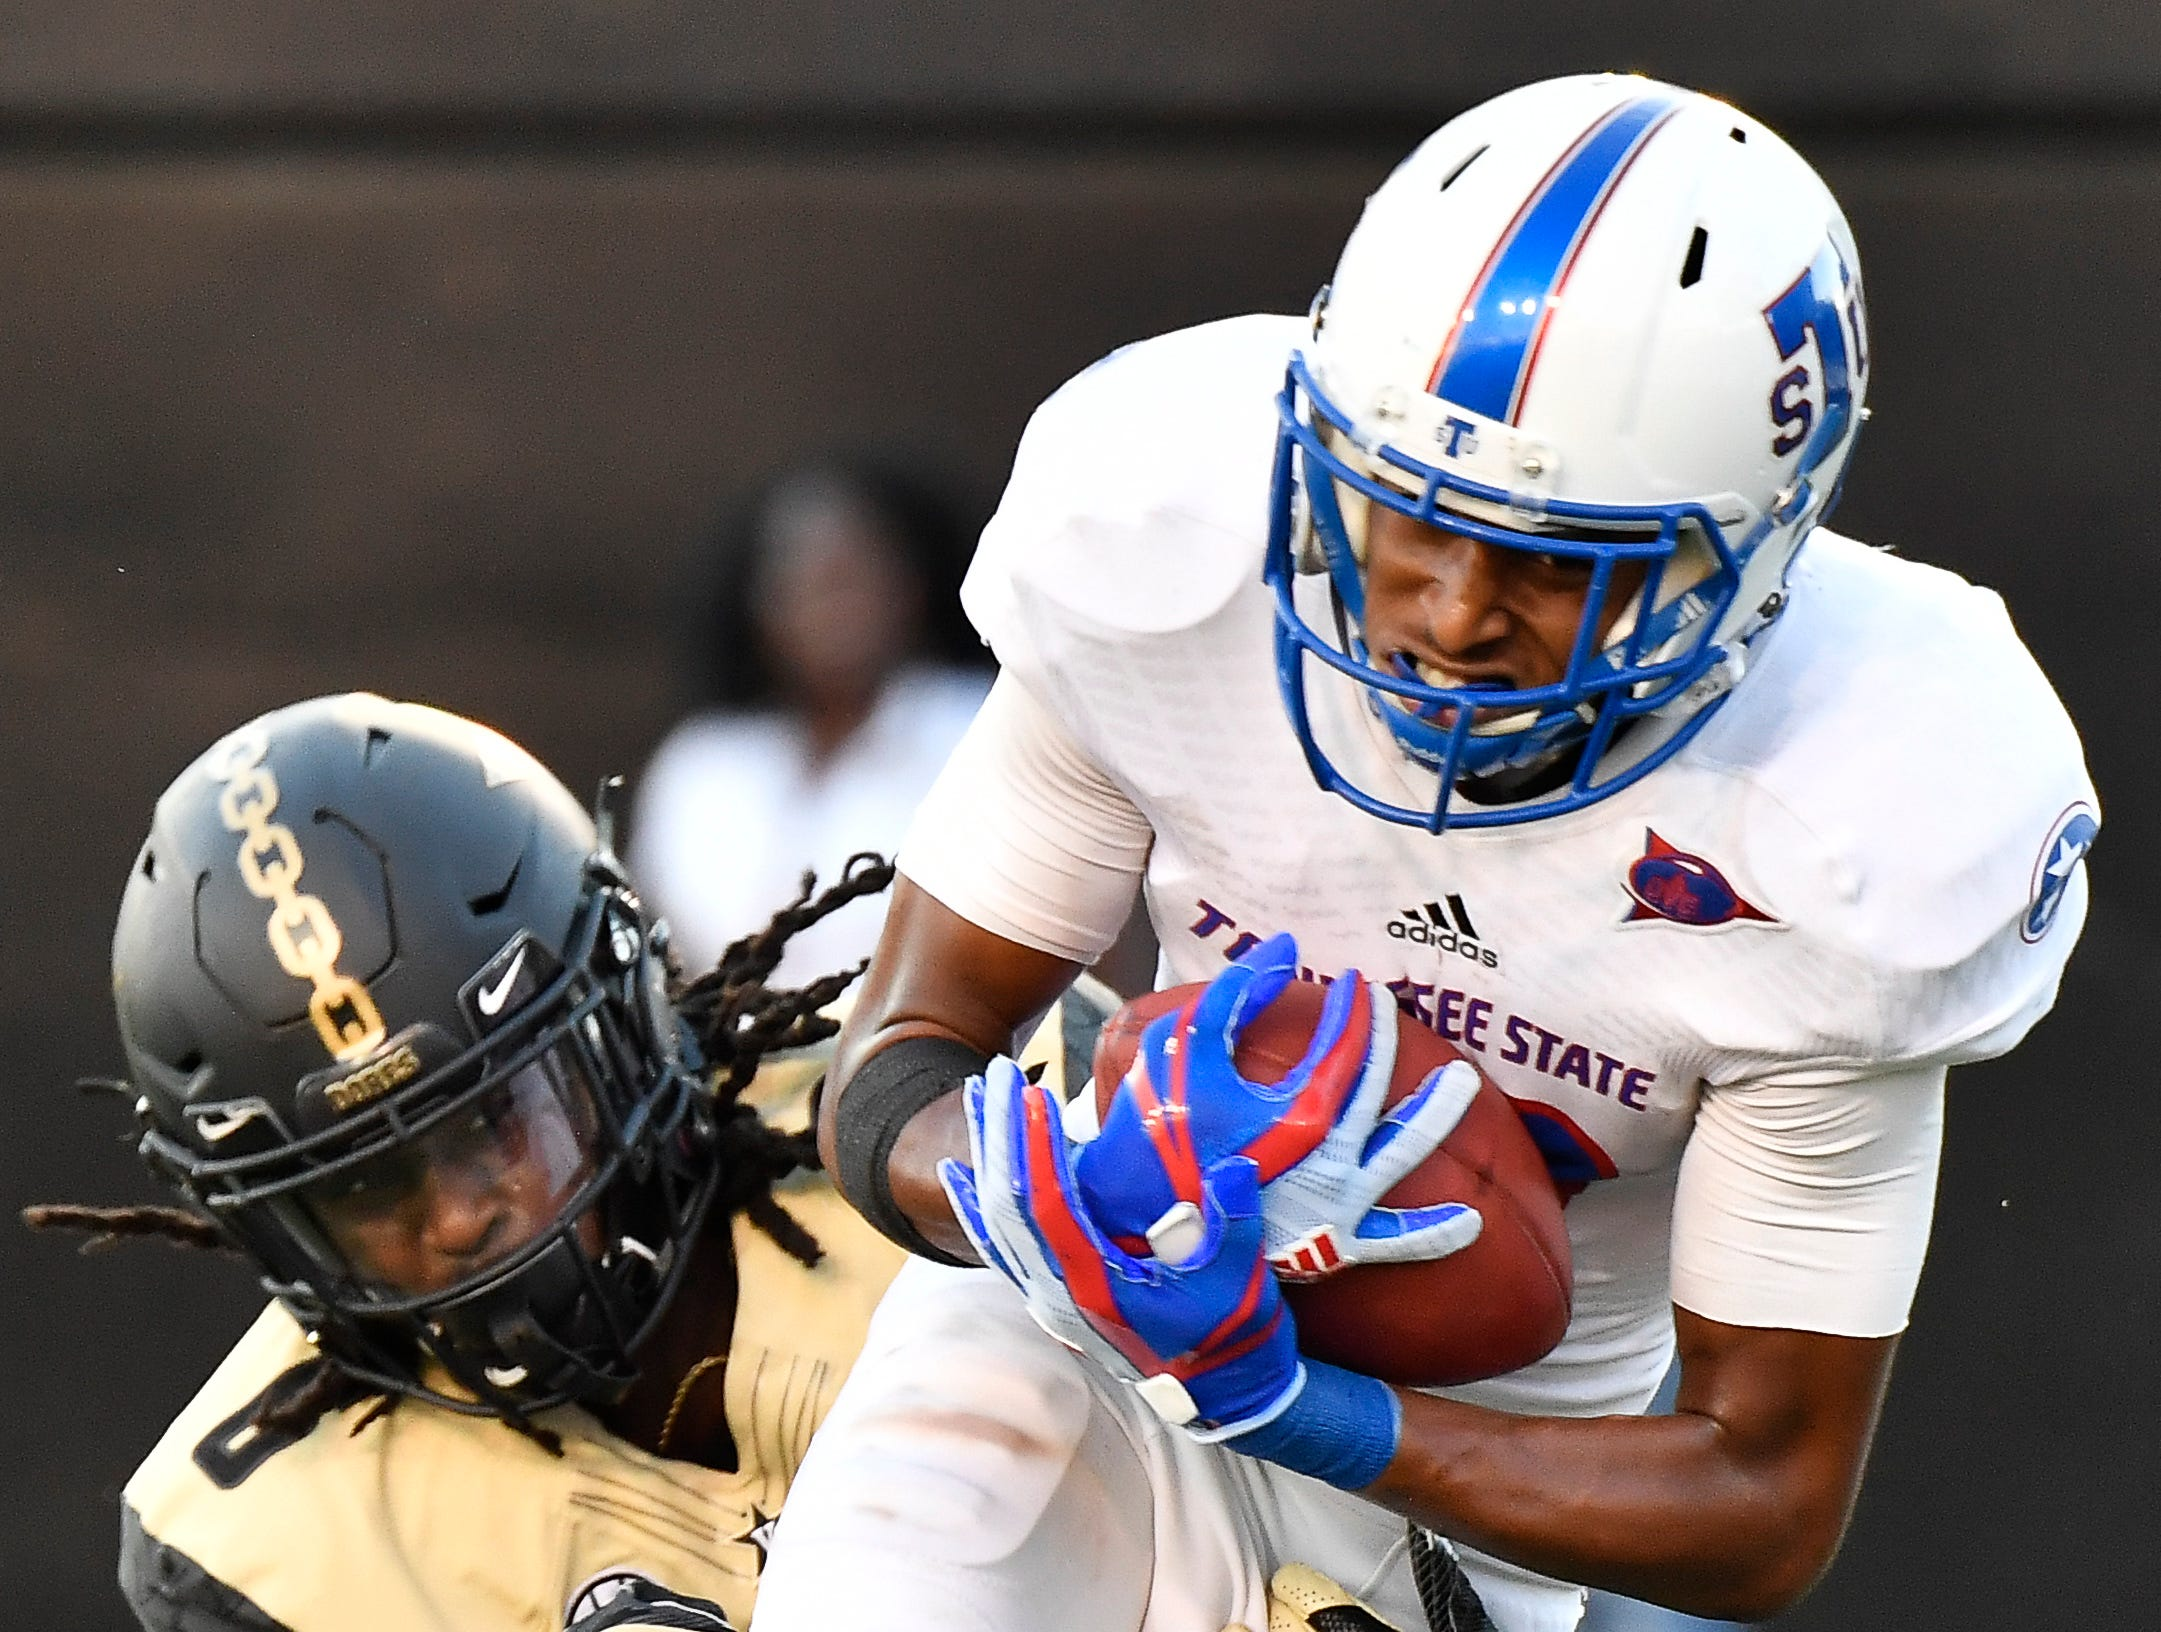 TSU wide receiver DeVon Johnson (13) pulls in a pass over Vanderbilt cornerback Joejuan Williams (8) during the fourth quarter Vanderbilt Stadium Saturday, Sept. 29, 2018, in Nashville, Tenn.